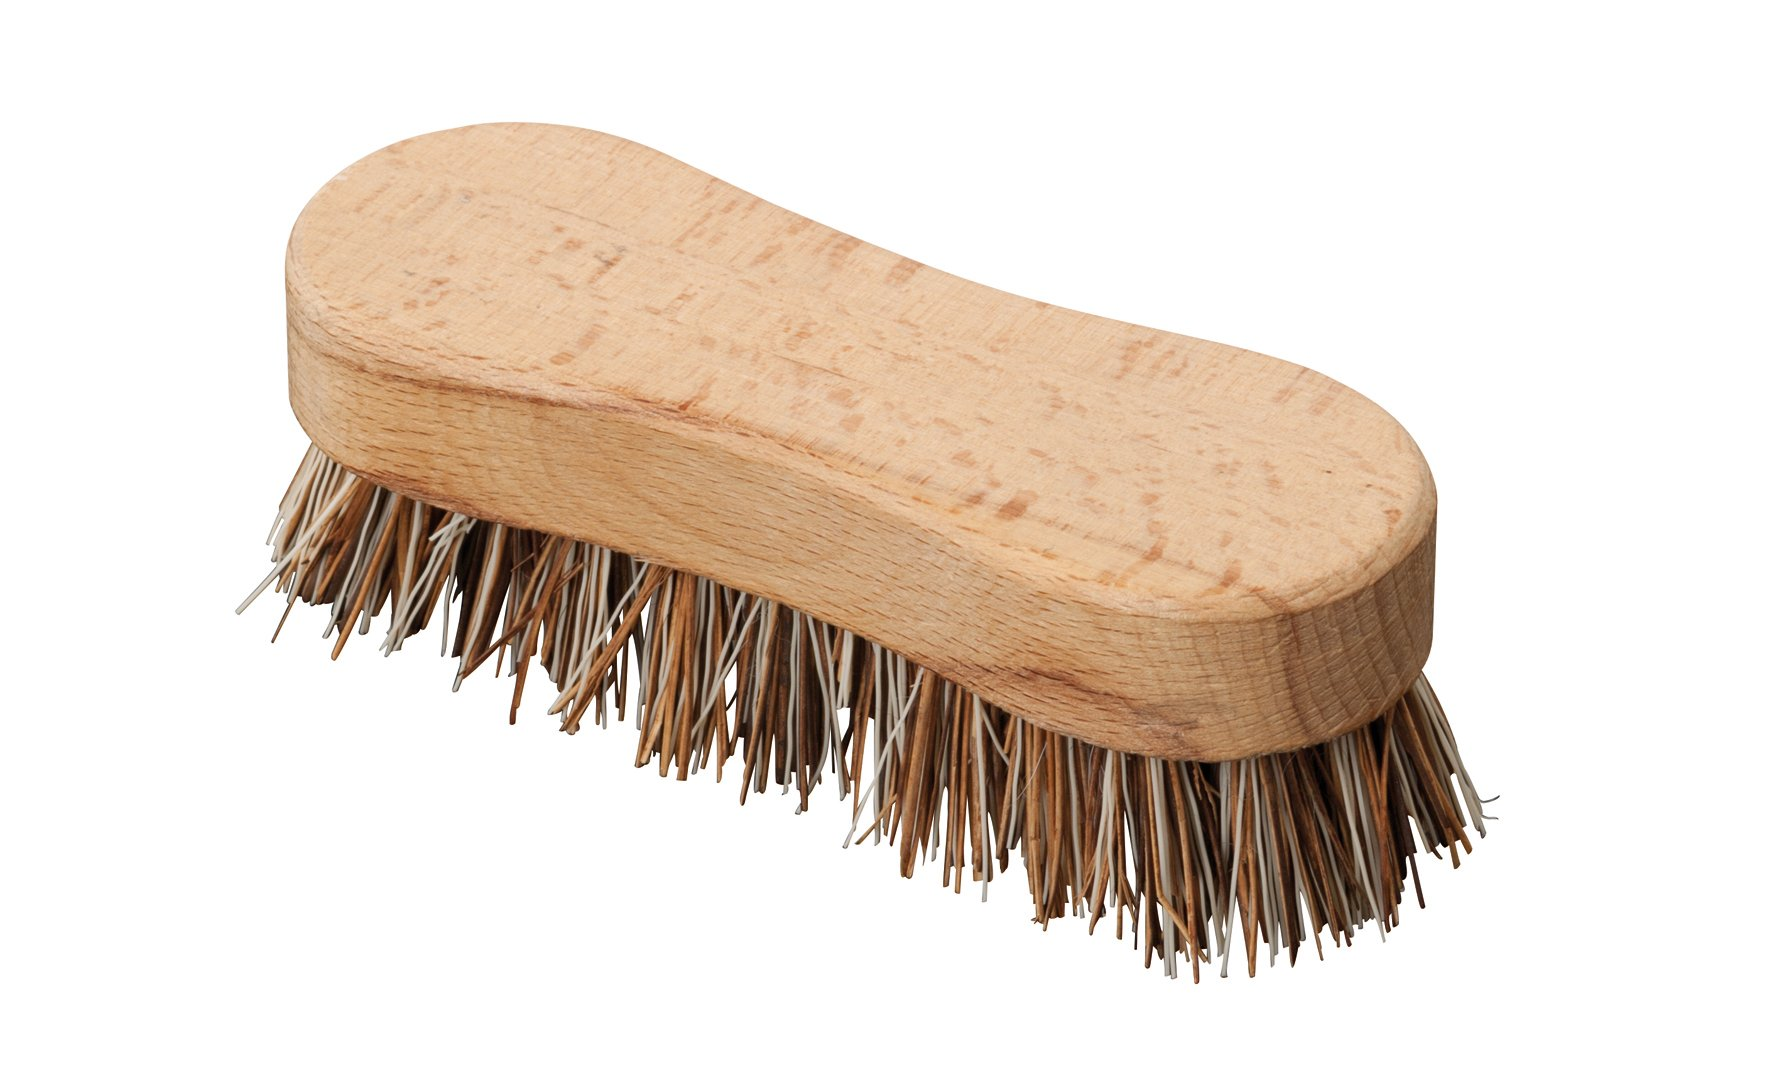 Redecker Union Fiber Scrub Brush with Untreated Beechwood Handle, 4-3/4-Inches by REDECKER